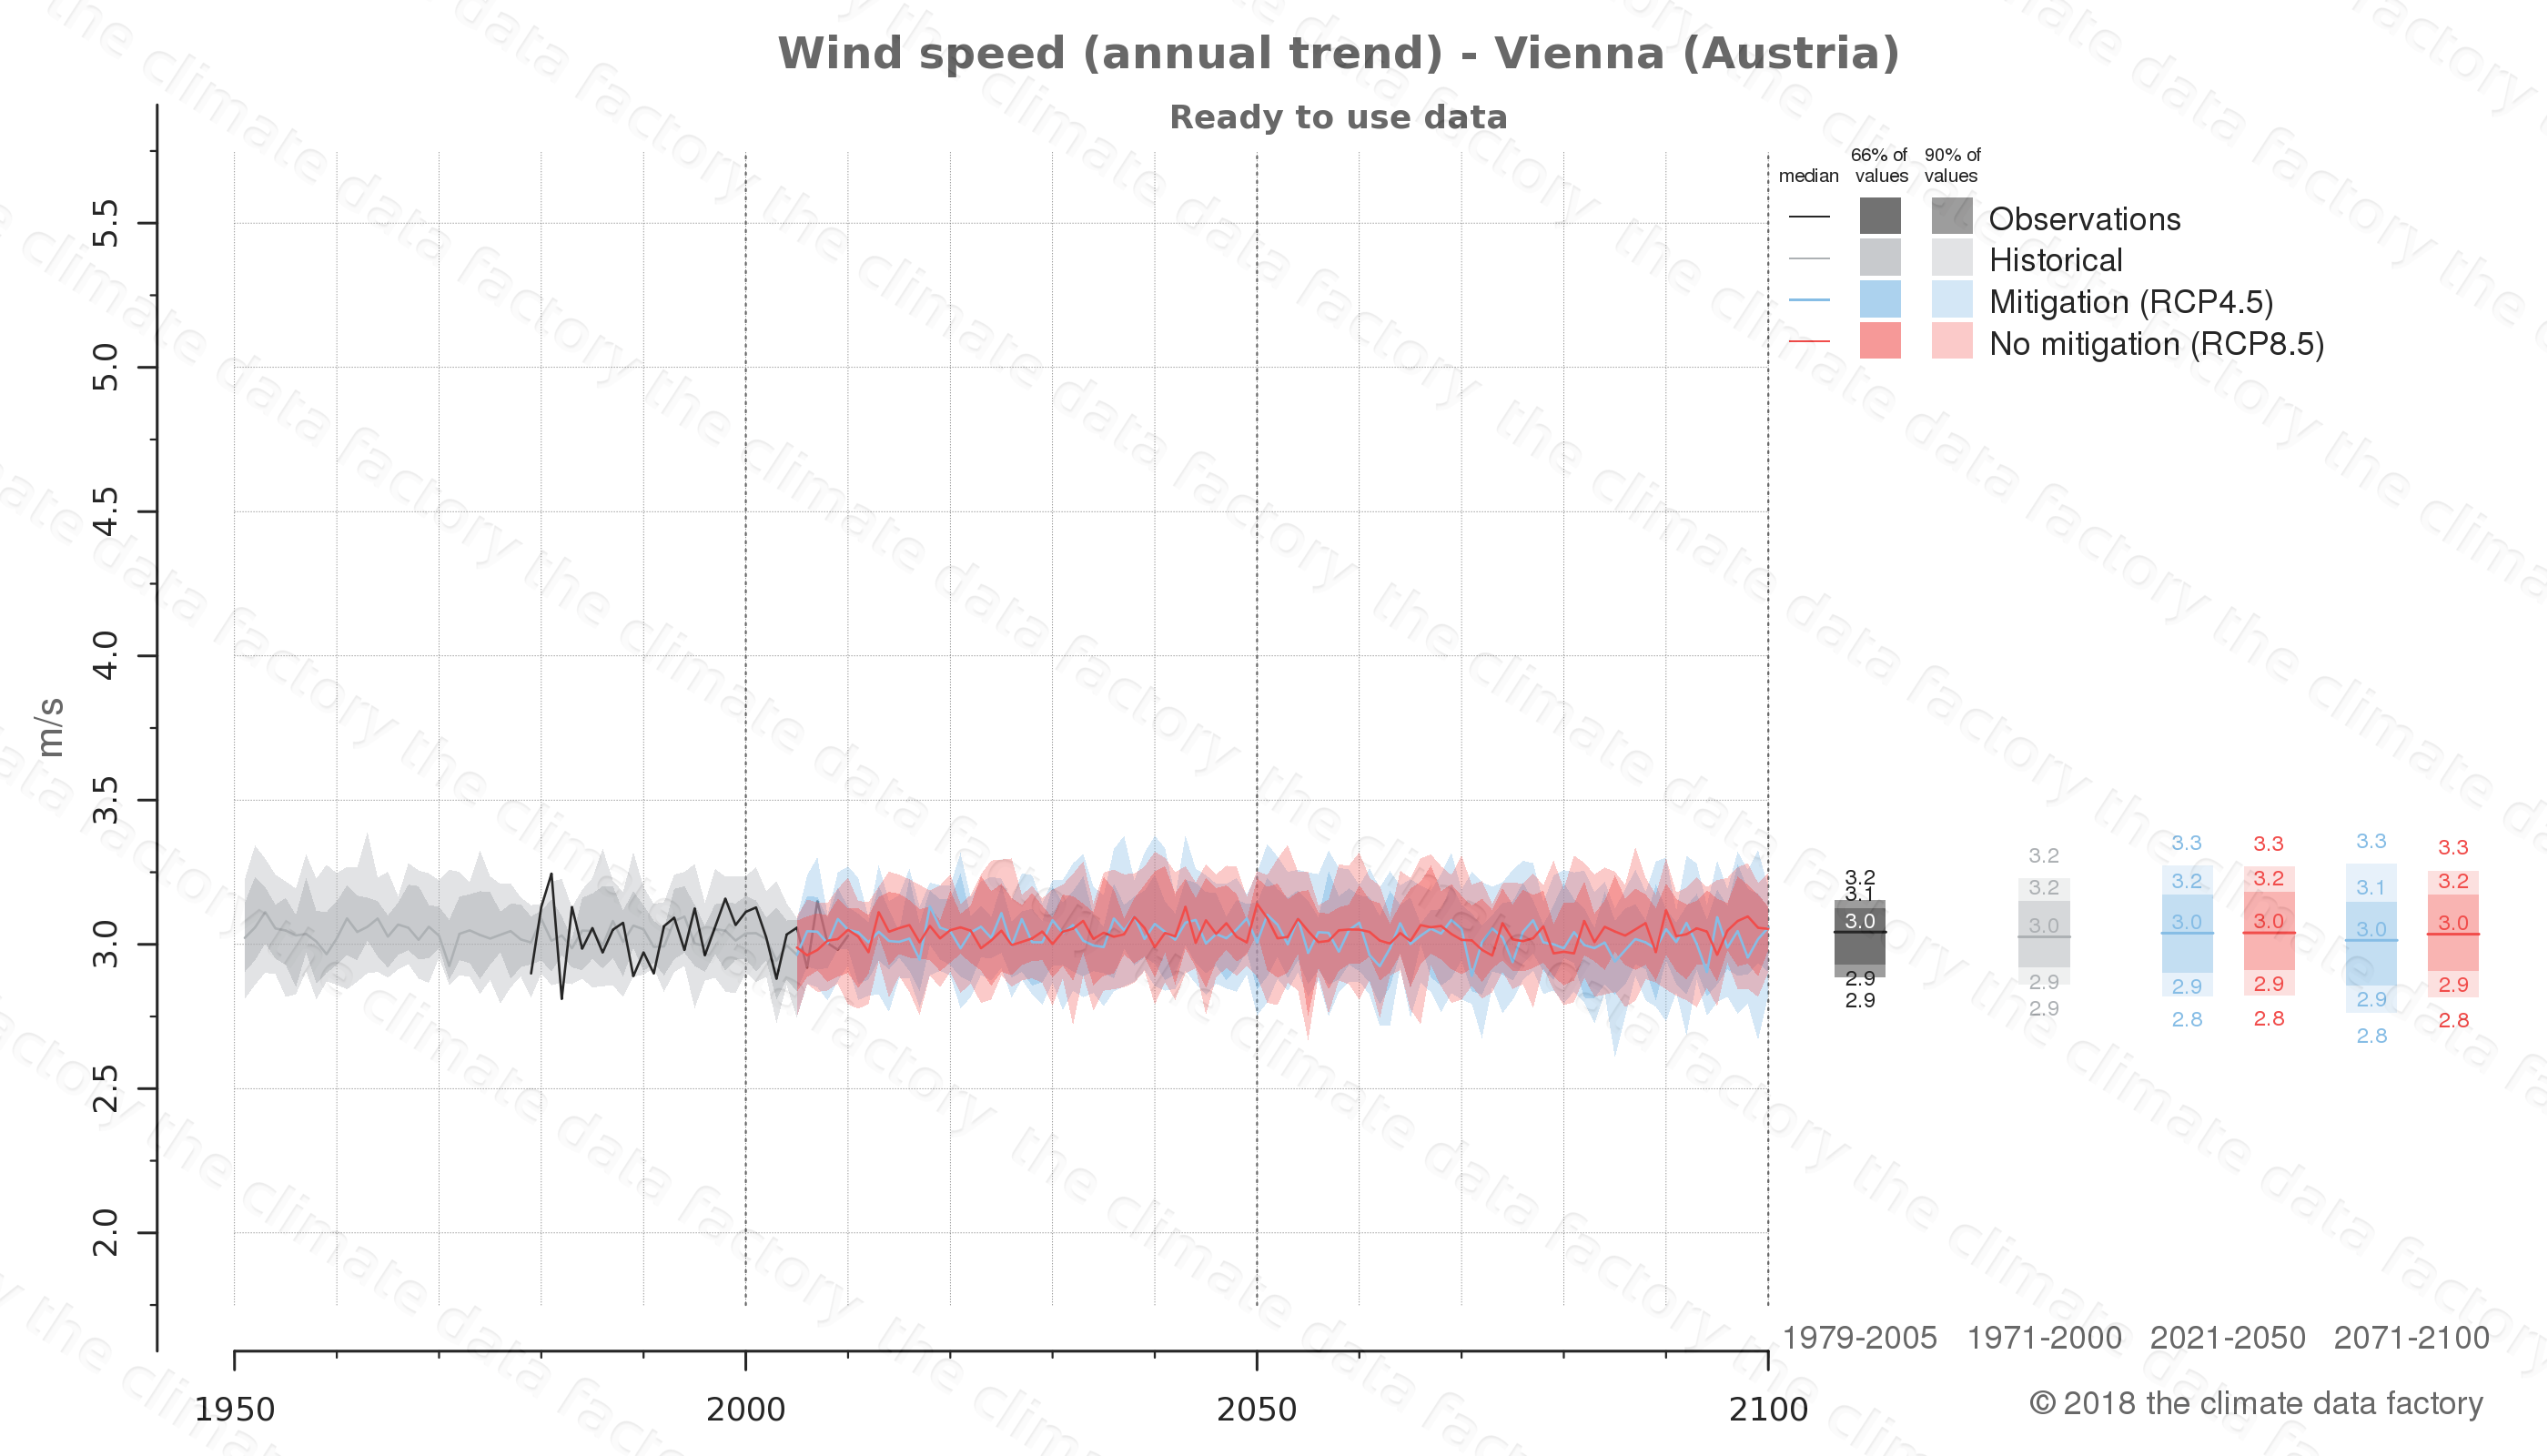 climate change data policy adaptation climate graph city data wind-speed vienna austria